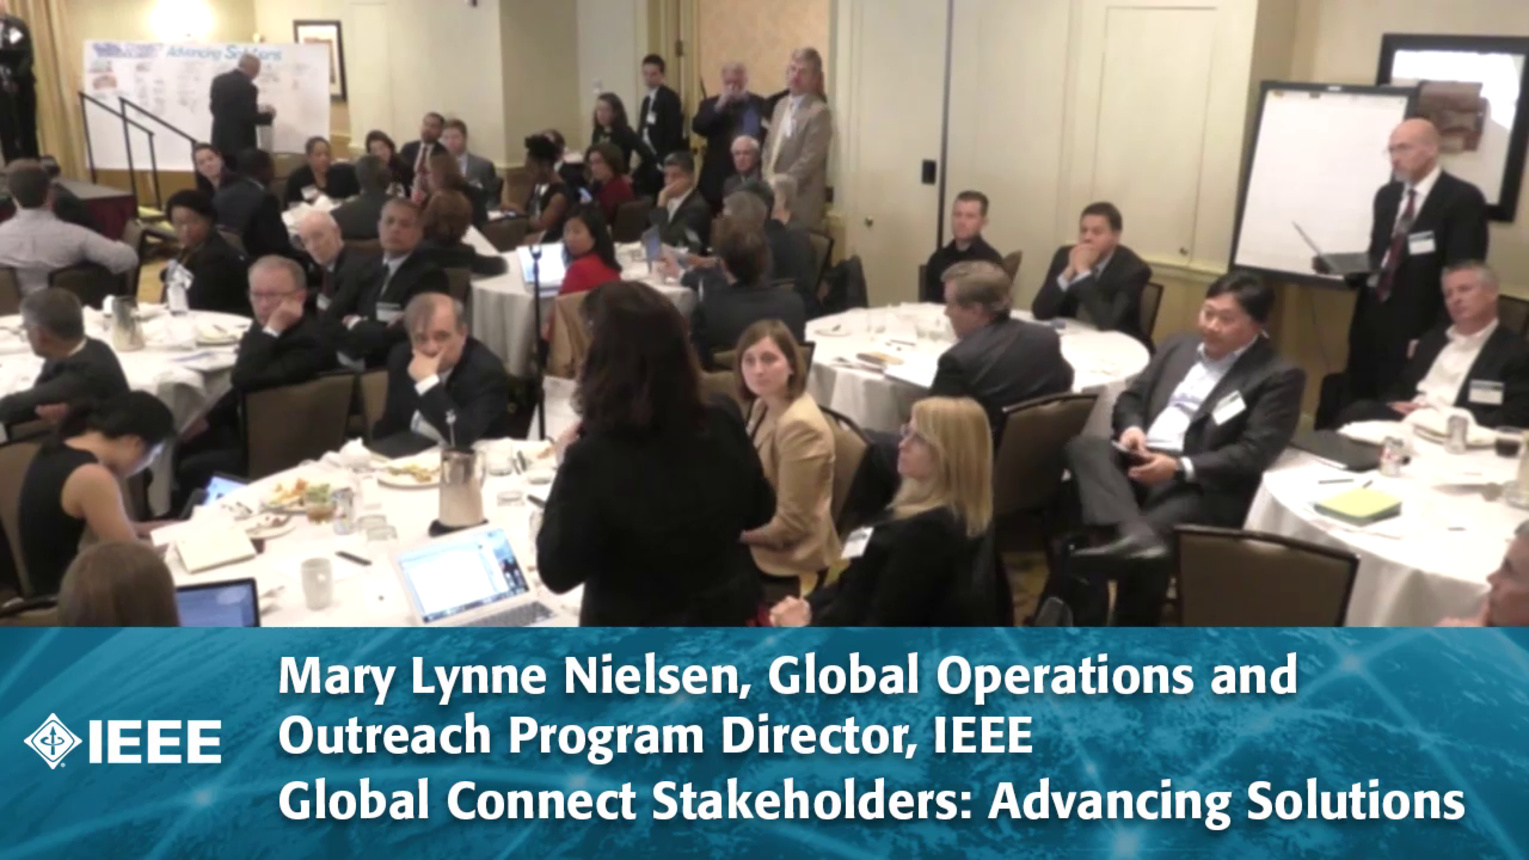 World Cafe & Discussion Report Session #1 - Global Connect Stakeholders: Advancing Solutions